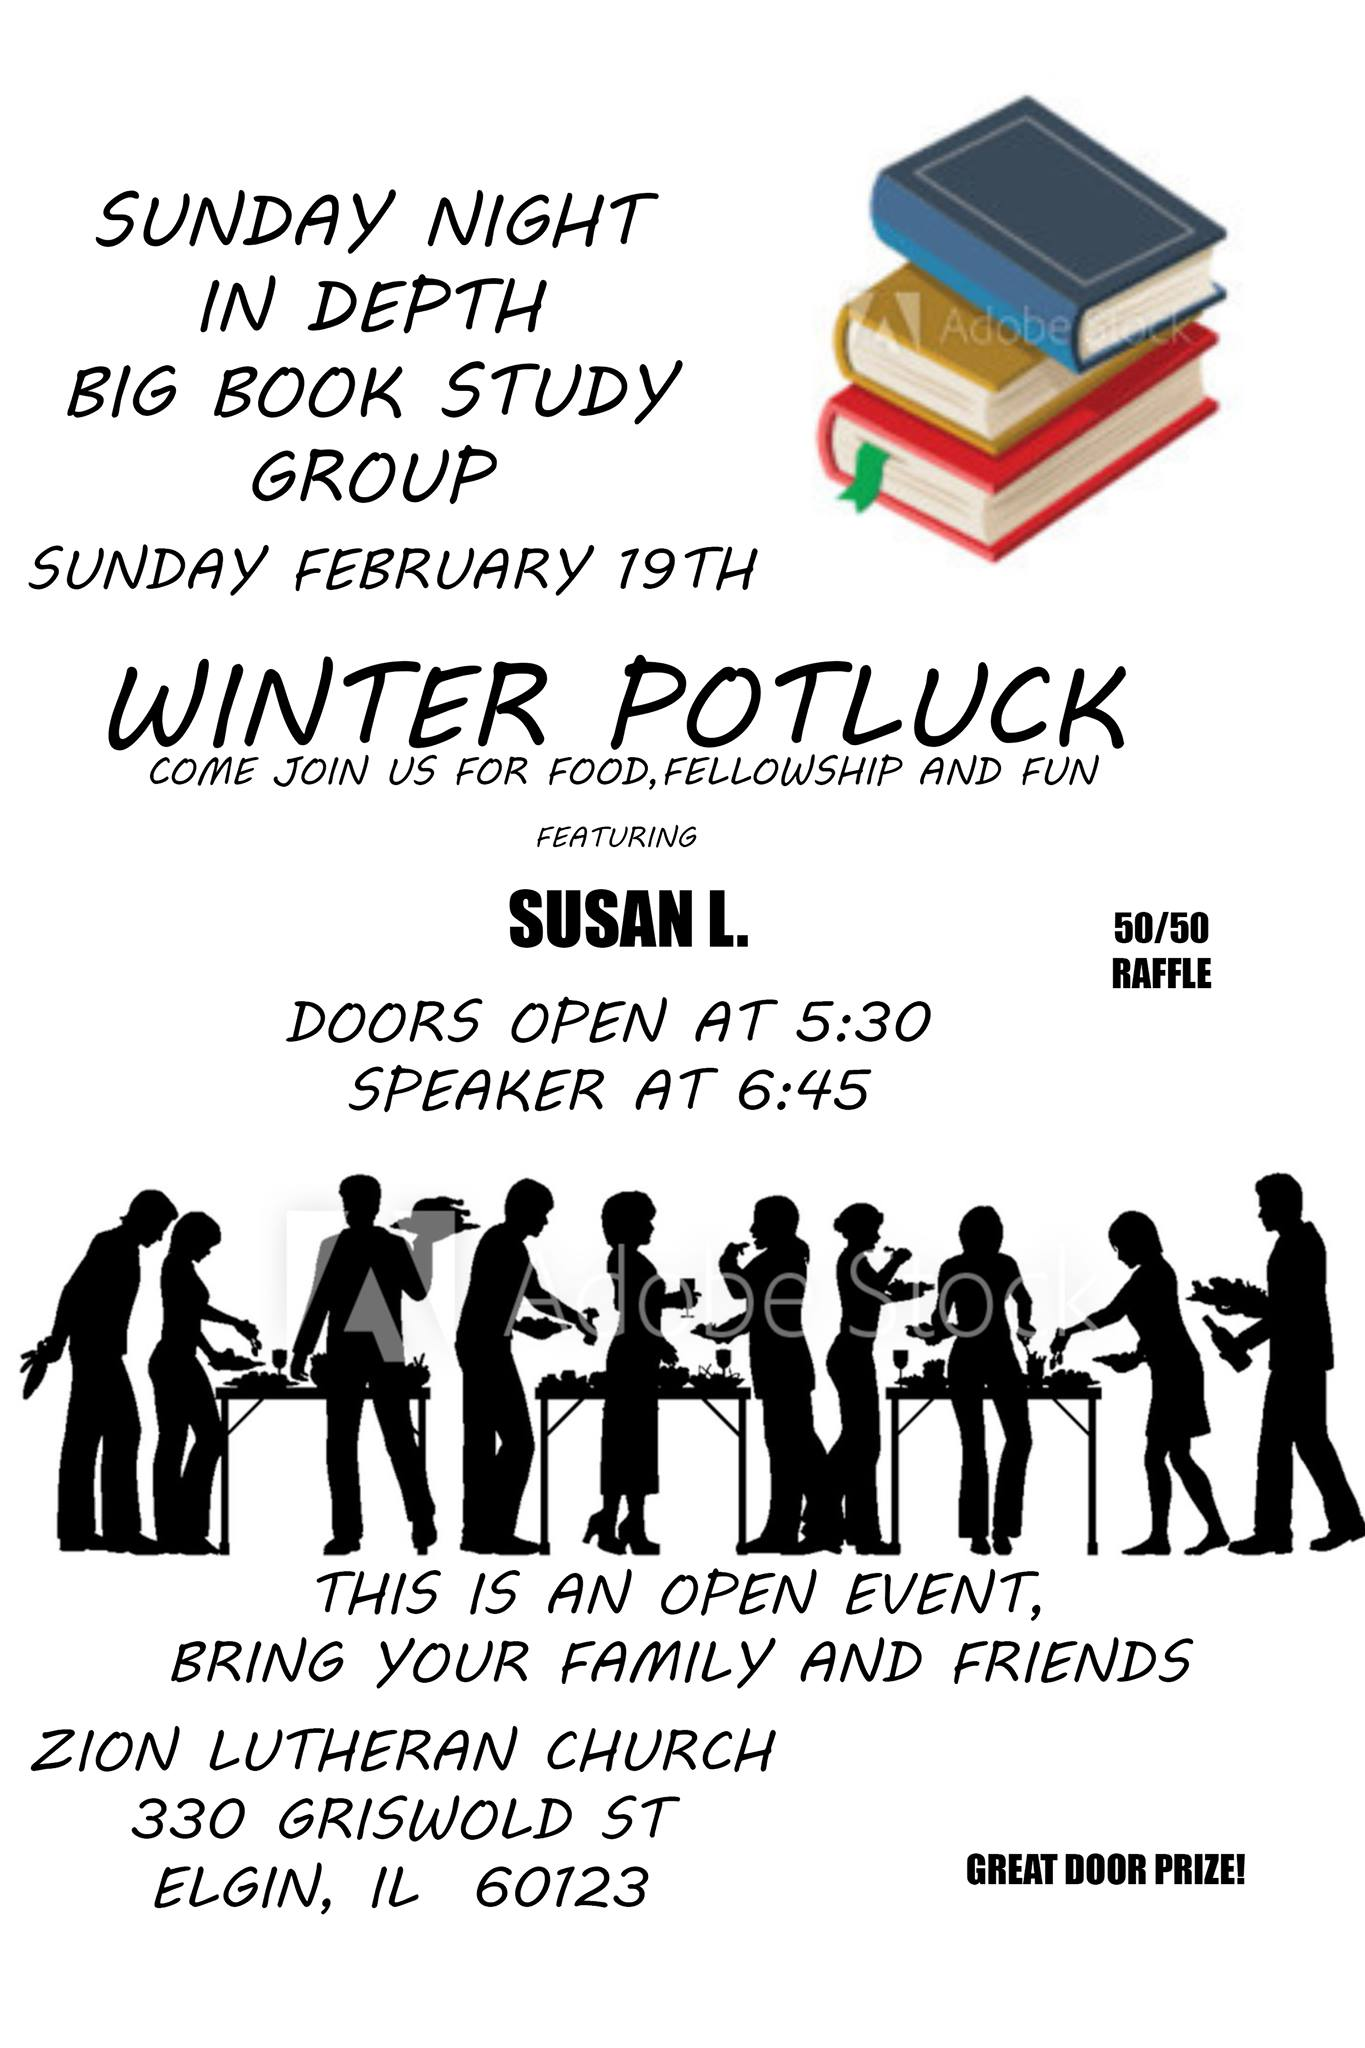 Winter Open Speaker Potluck – In-Depth Big Book Study Group 1